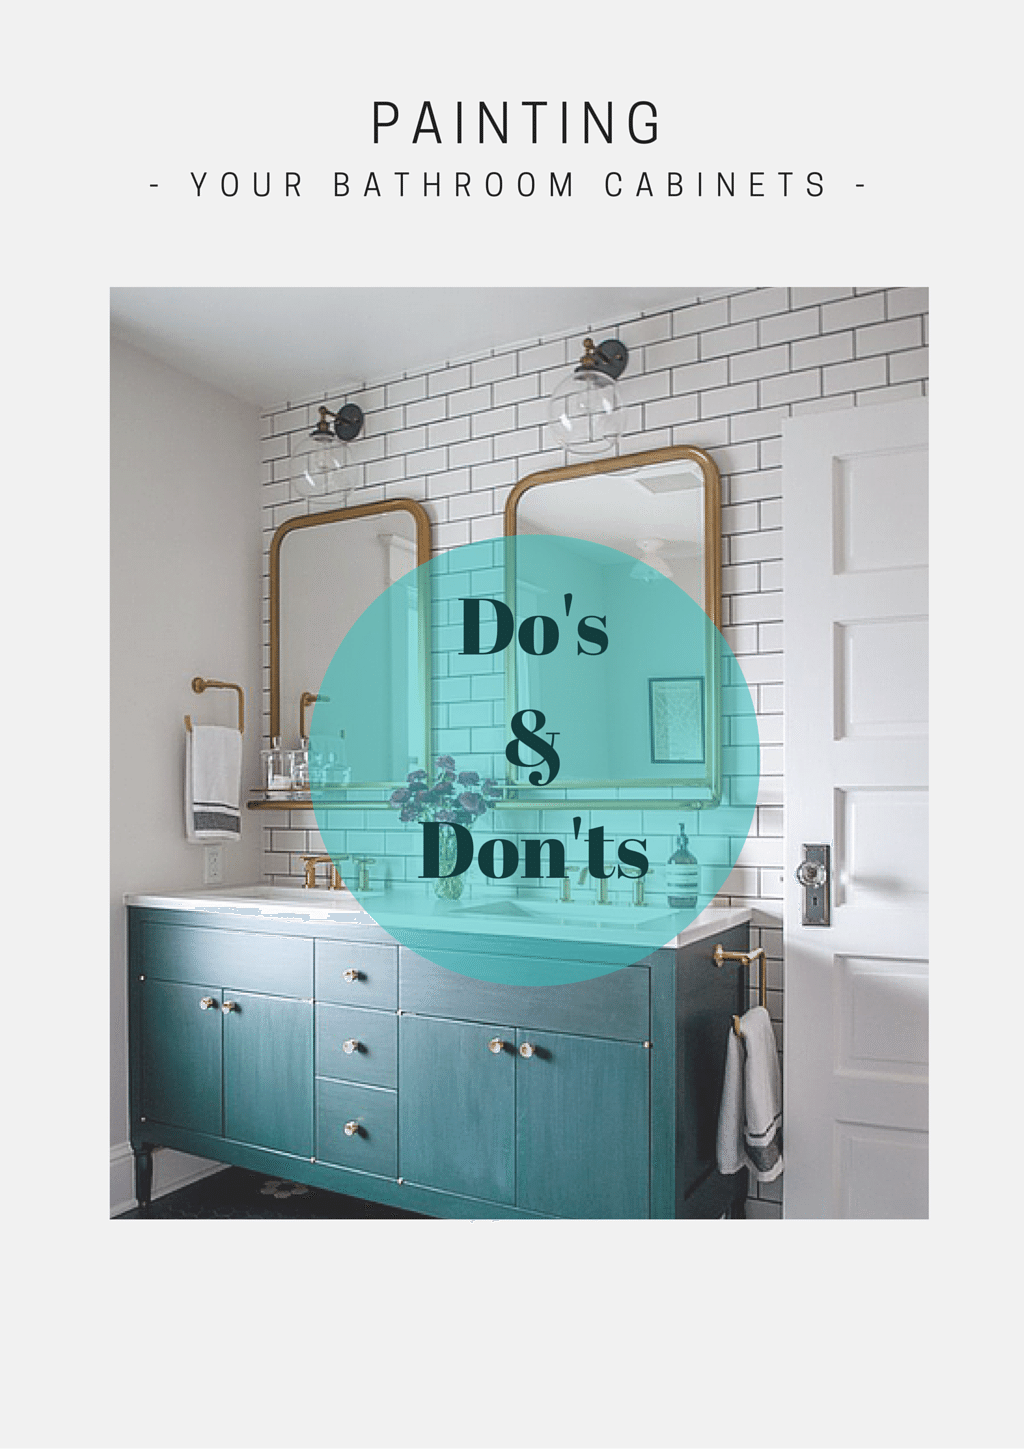 If your bathroom cabinets are old, ugly, tired, or all of the above, you've probably thought about painting them more than a few times.